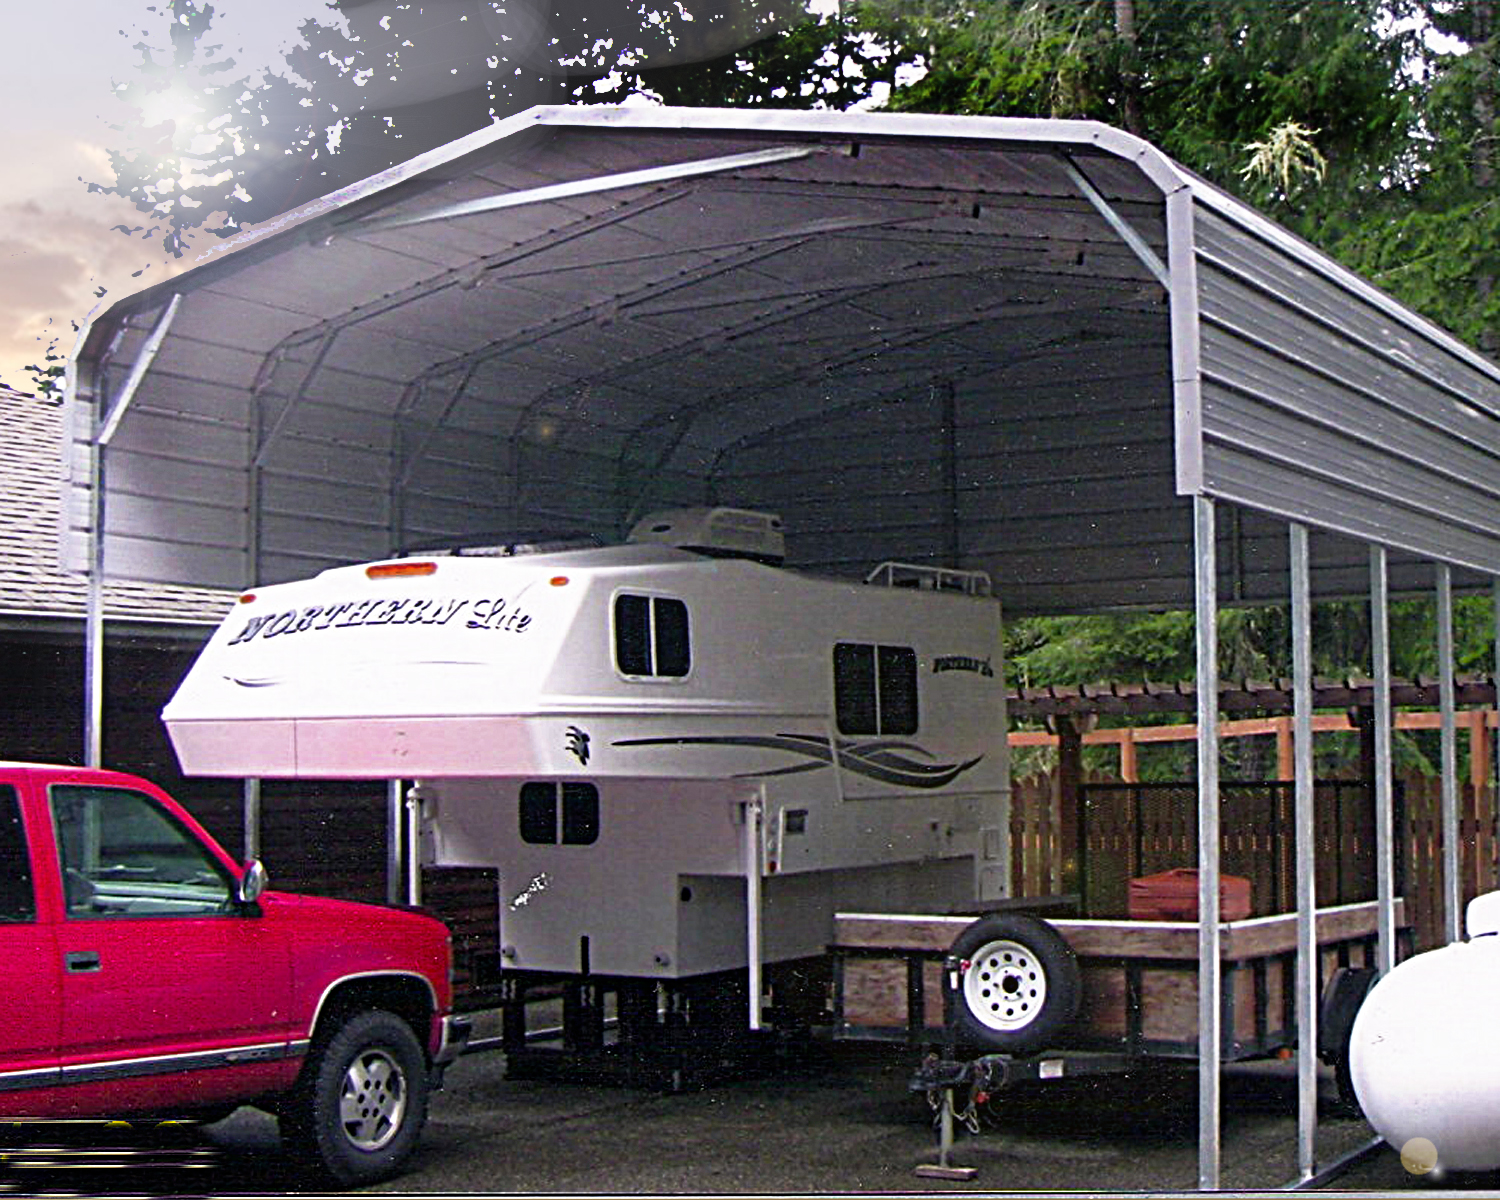 Stow and stay! Use your RV year round. You can with a steel structure from All Steel Northwest Building Solutions